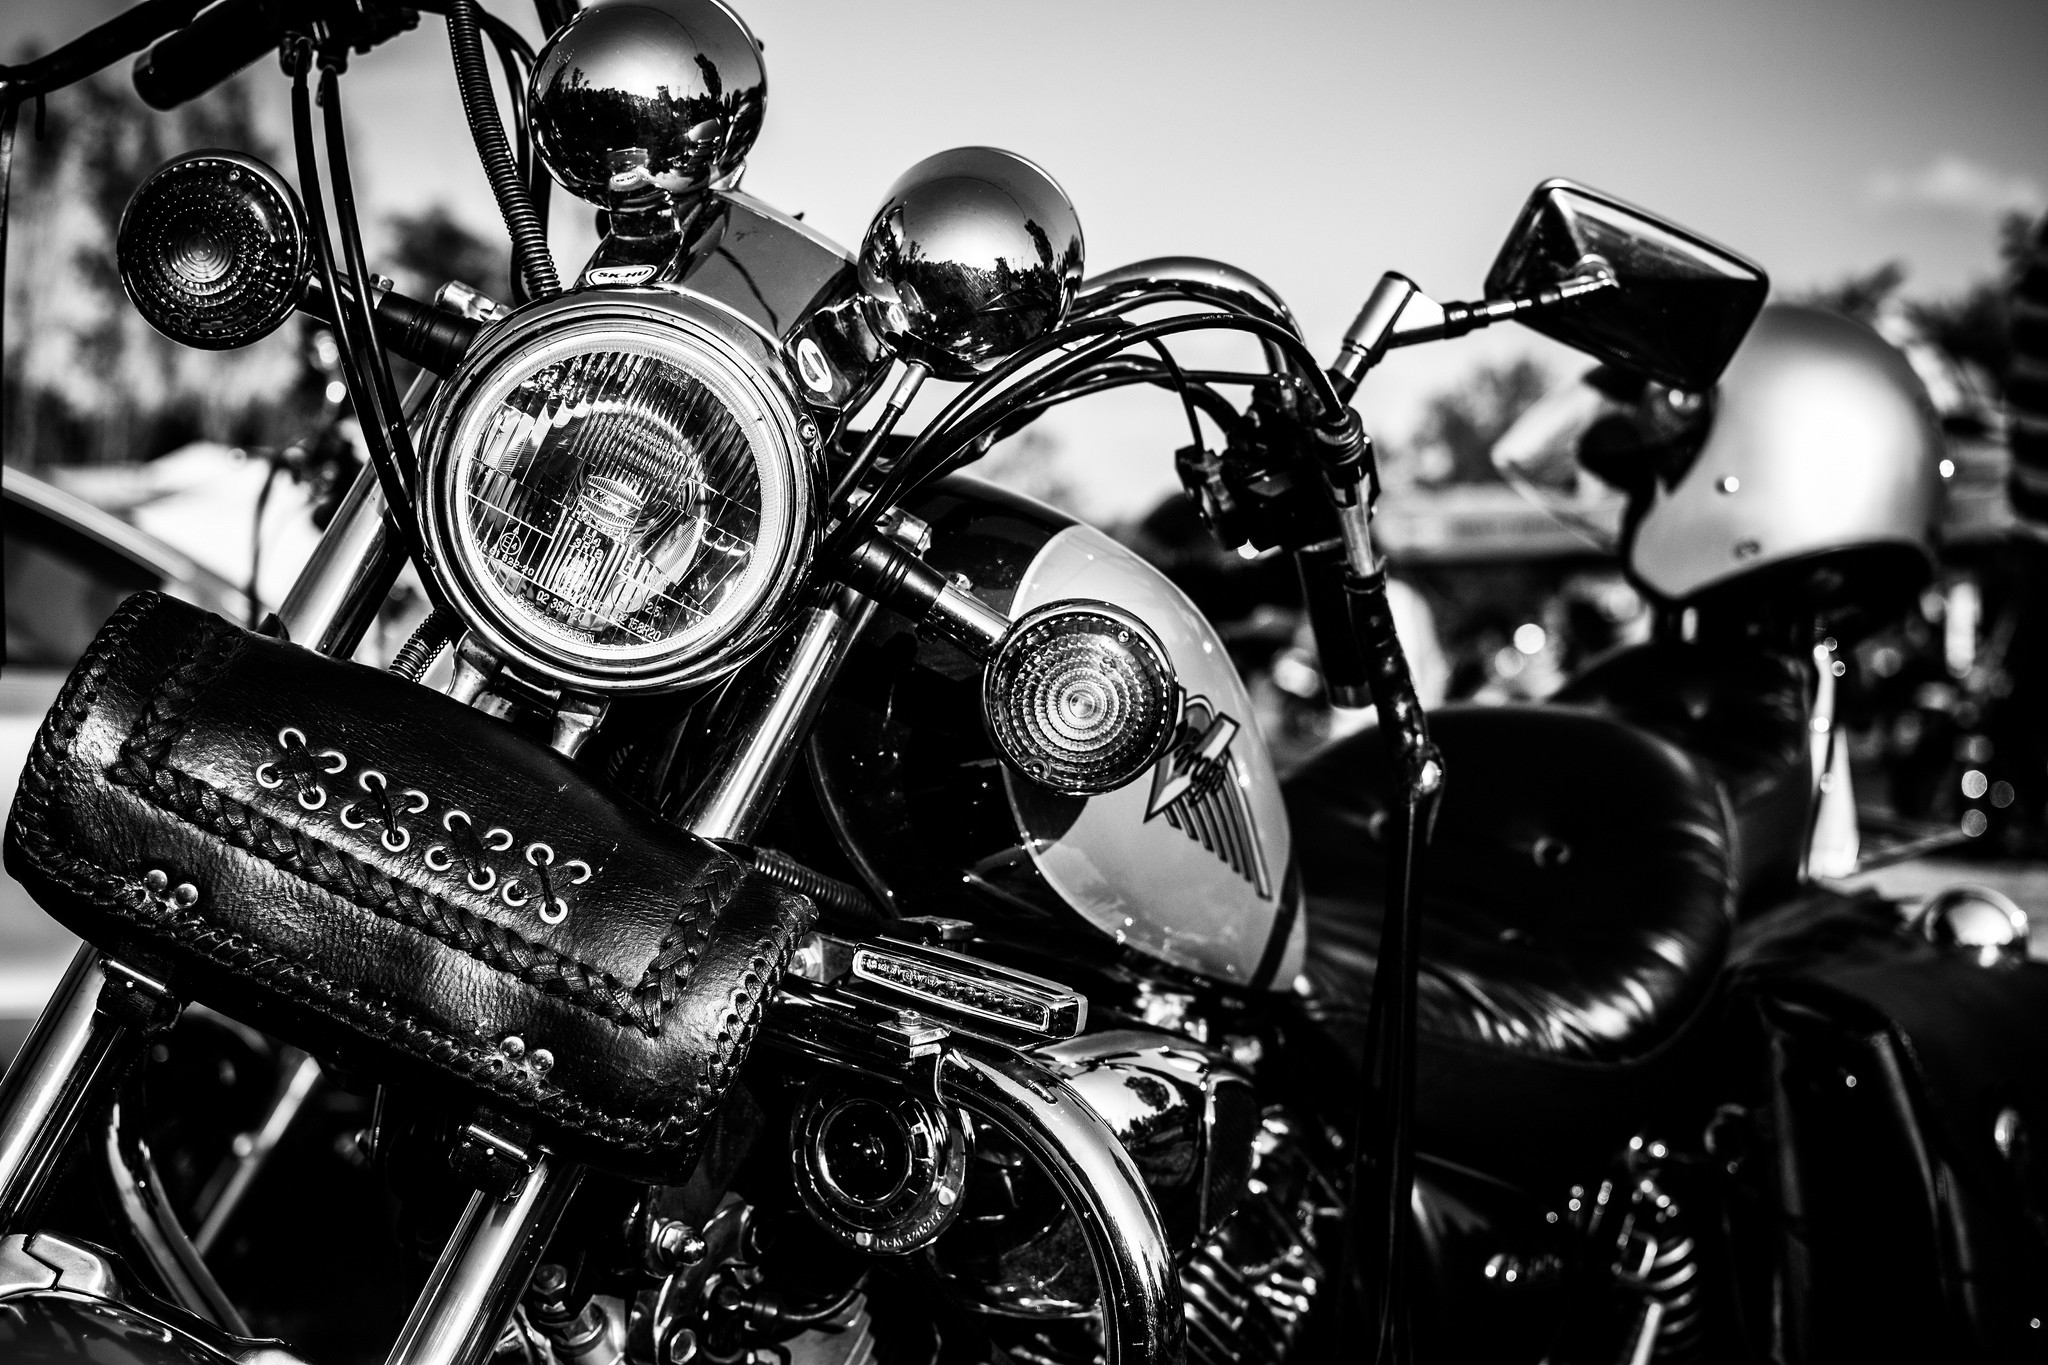 Res: 2048x1365, Back to 79+ Vintage Motorcycle Wallpapers